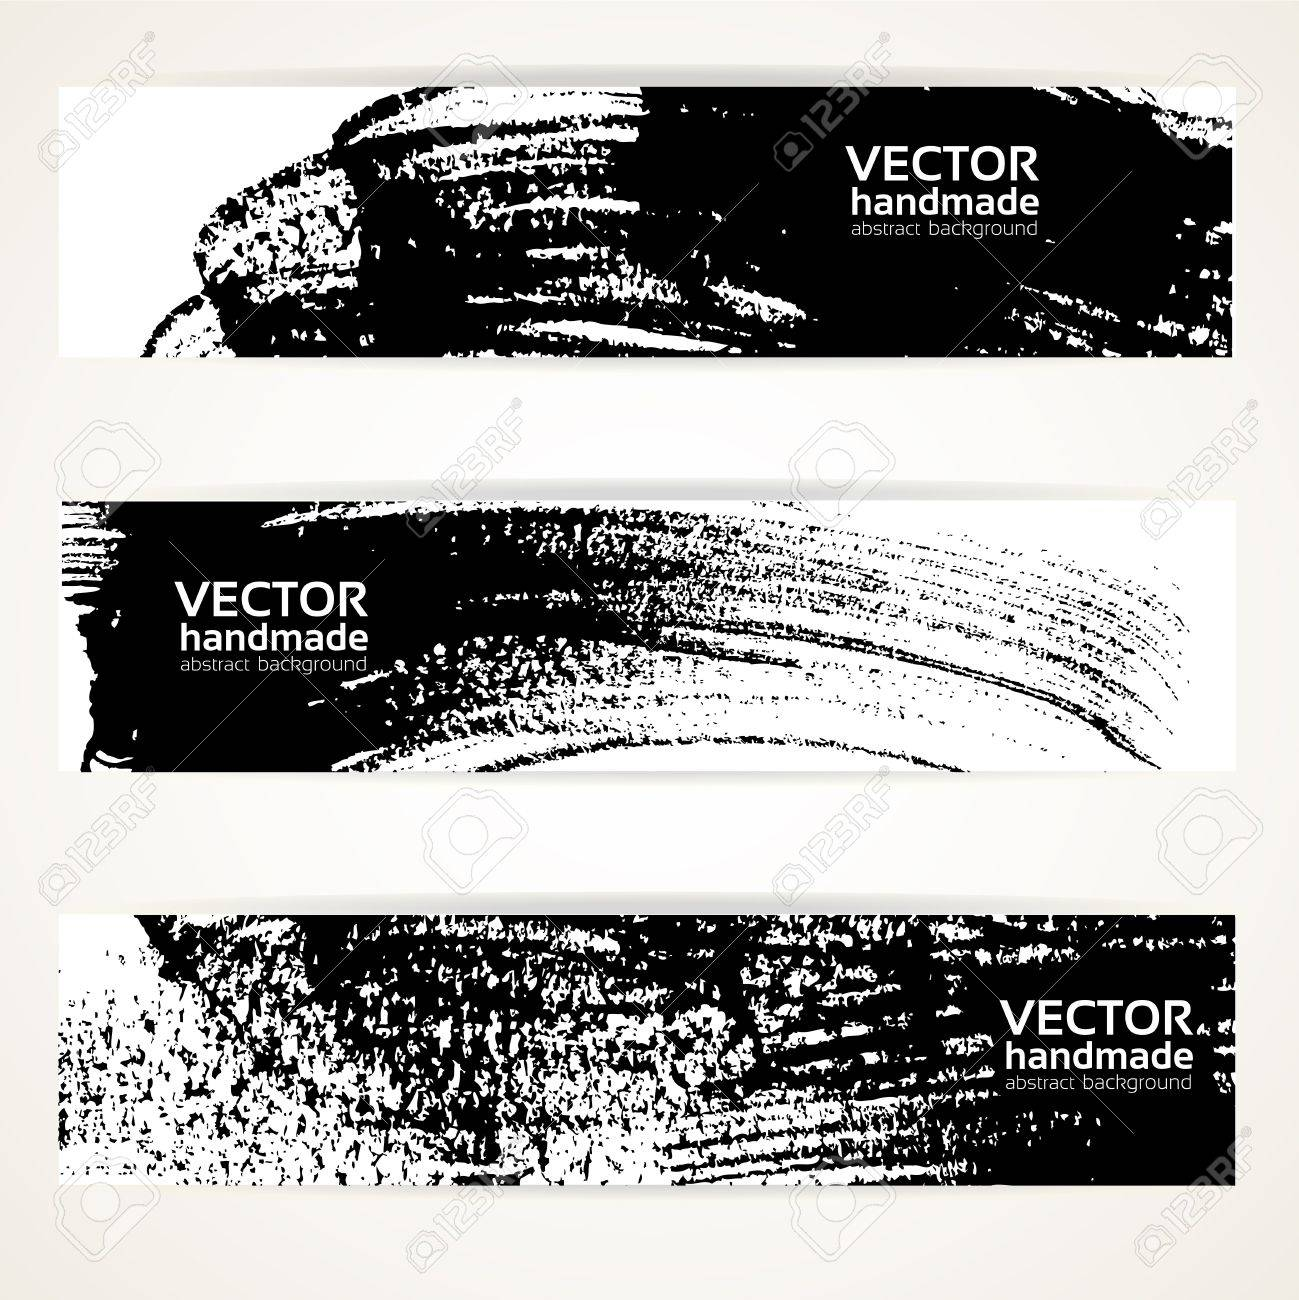 Abstract black and white brush texture handdrawing banner set. Stock Vector - 18708735